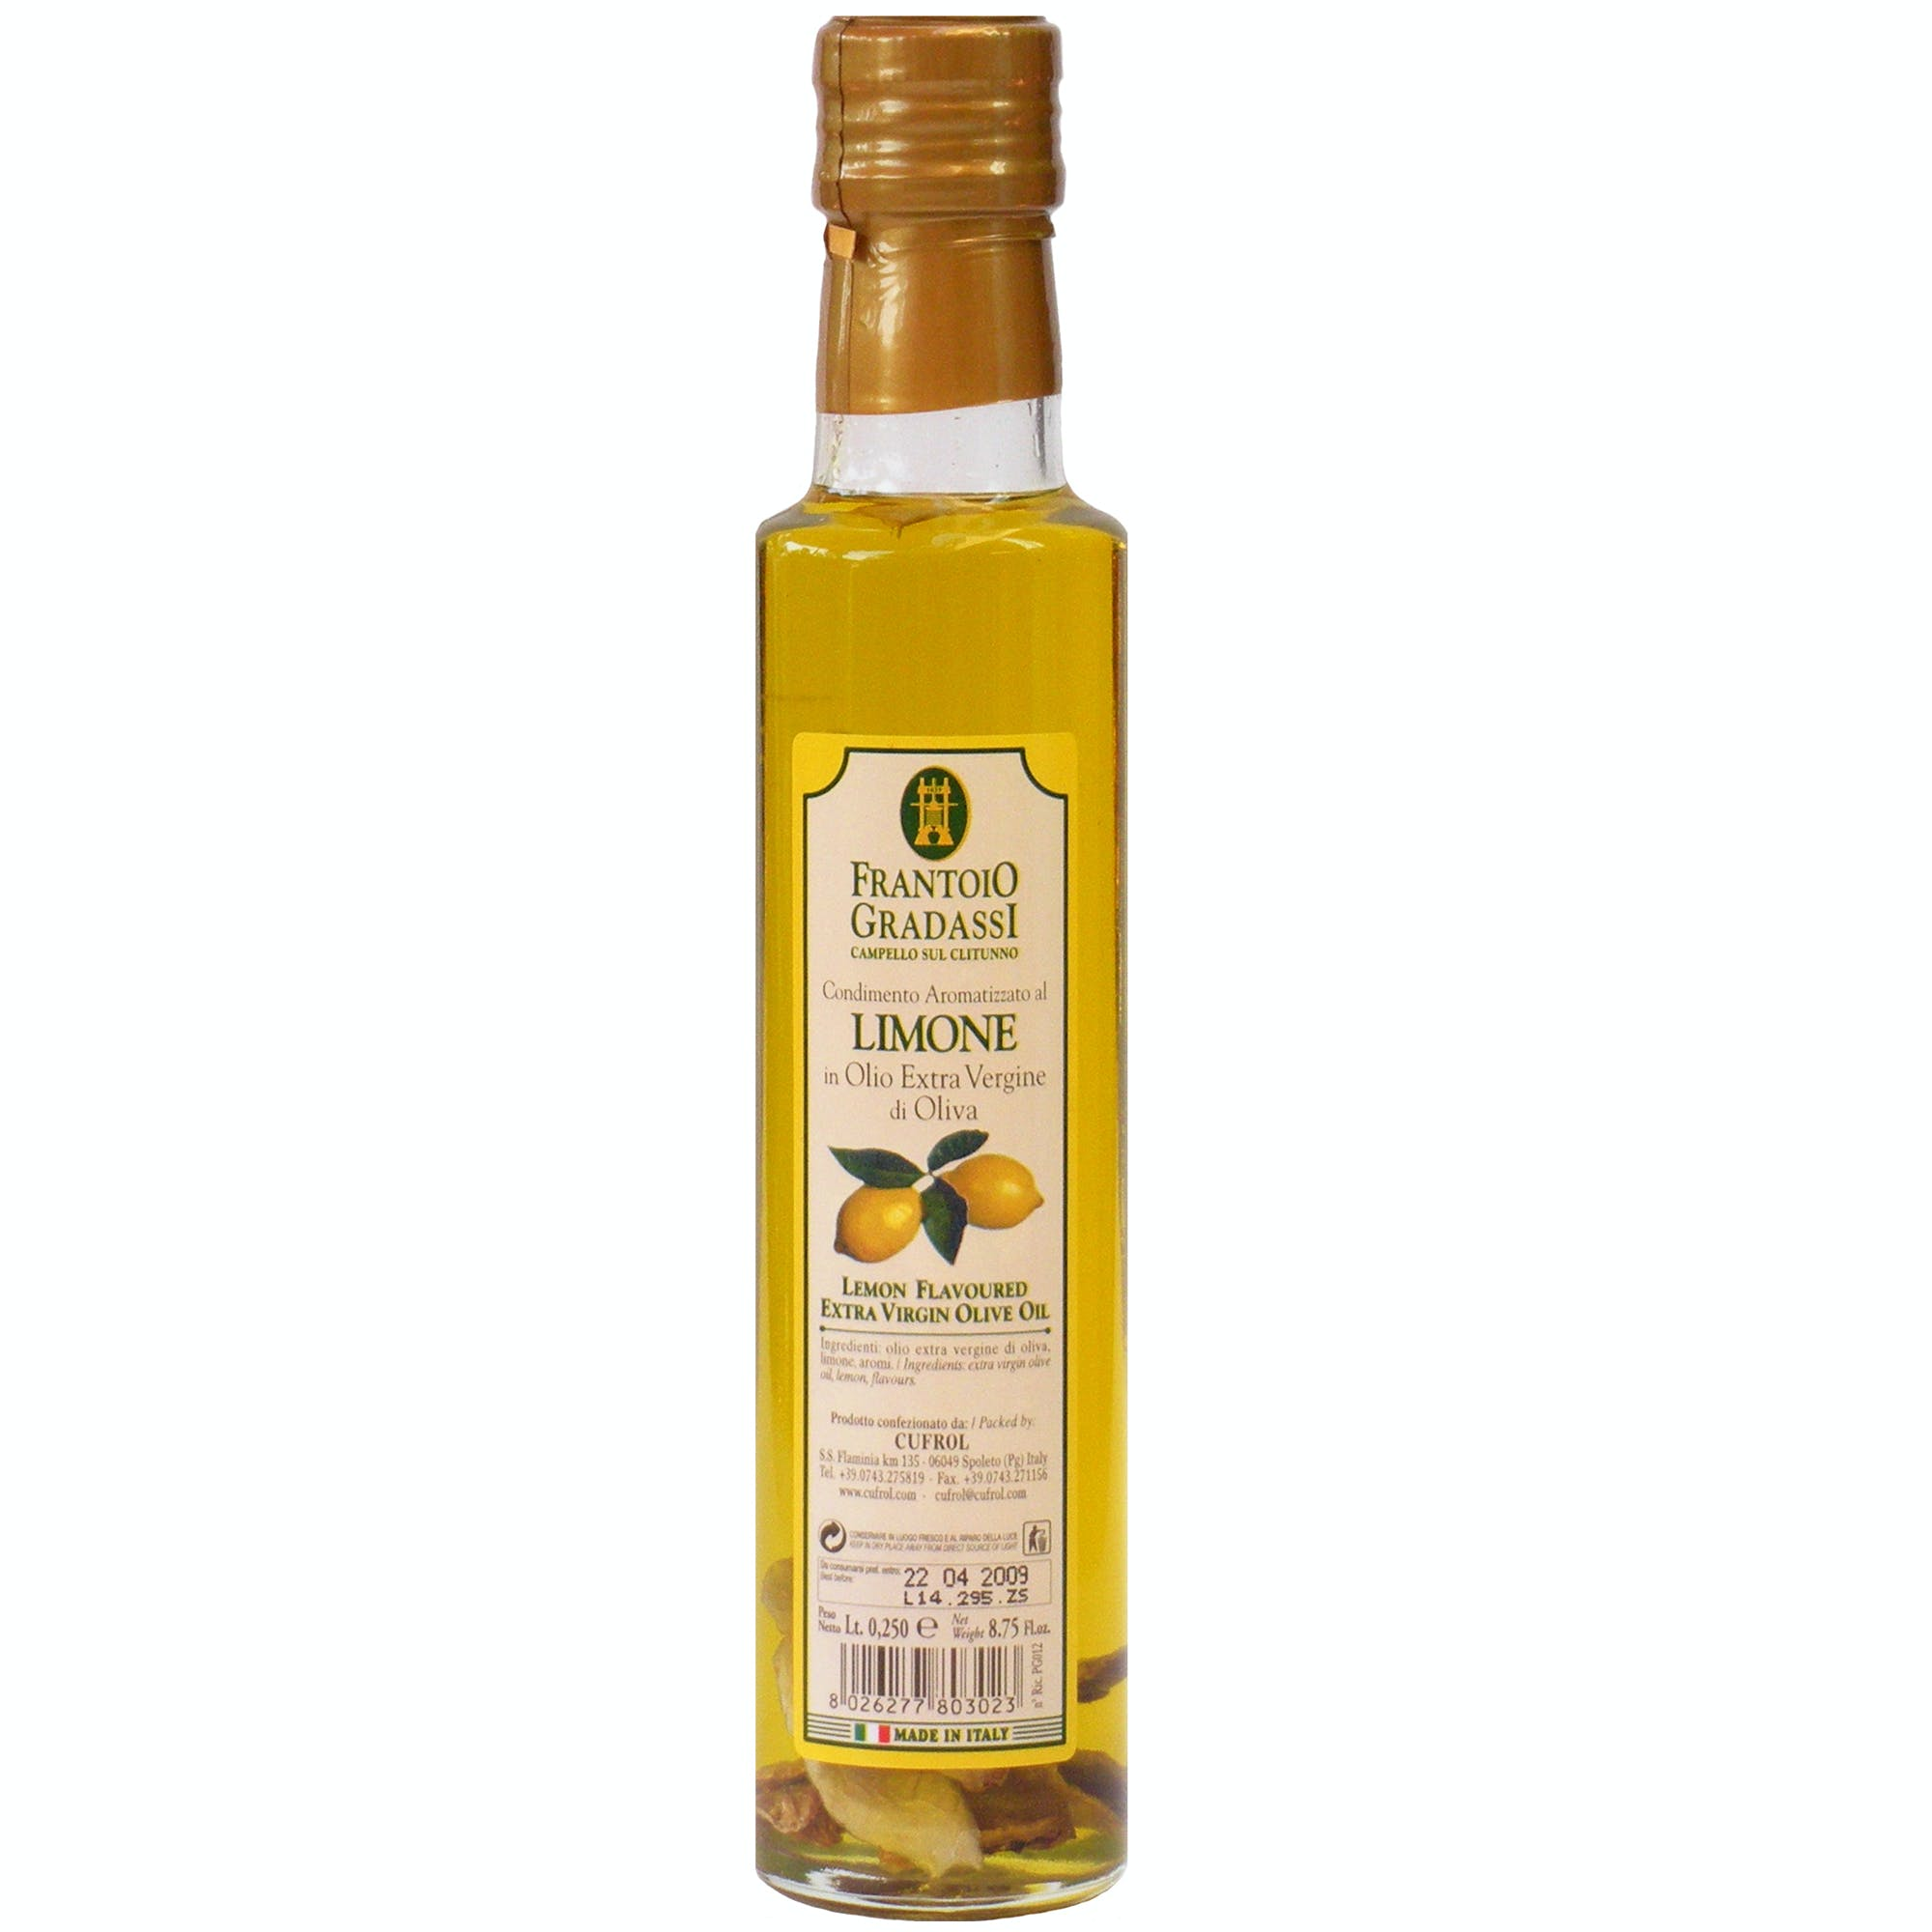 Italian Natural Lemon Infused Extra Virgin Olive Oil Dressing From Cufrol, 8.5 Ounces Infused oil sold by M5 Corporation